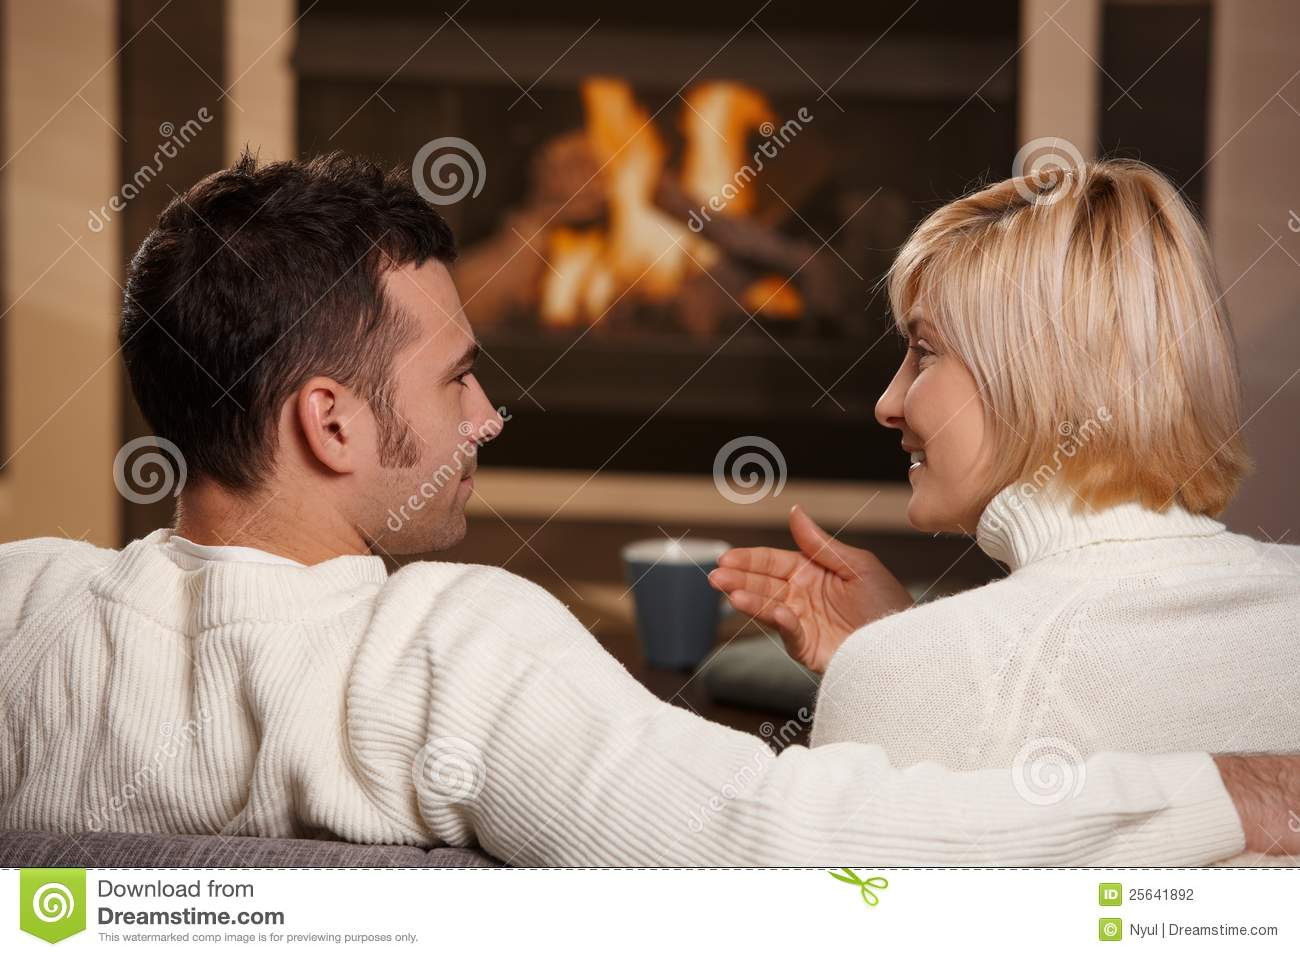 Couple Relaxing In Front Of Fireplace Man Looking At Woman Stock Romantic Couple At Home Stock Photography - Image: 25641892